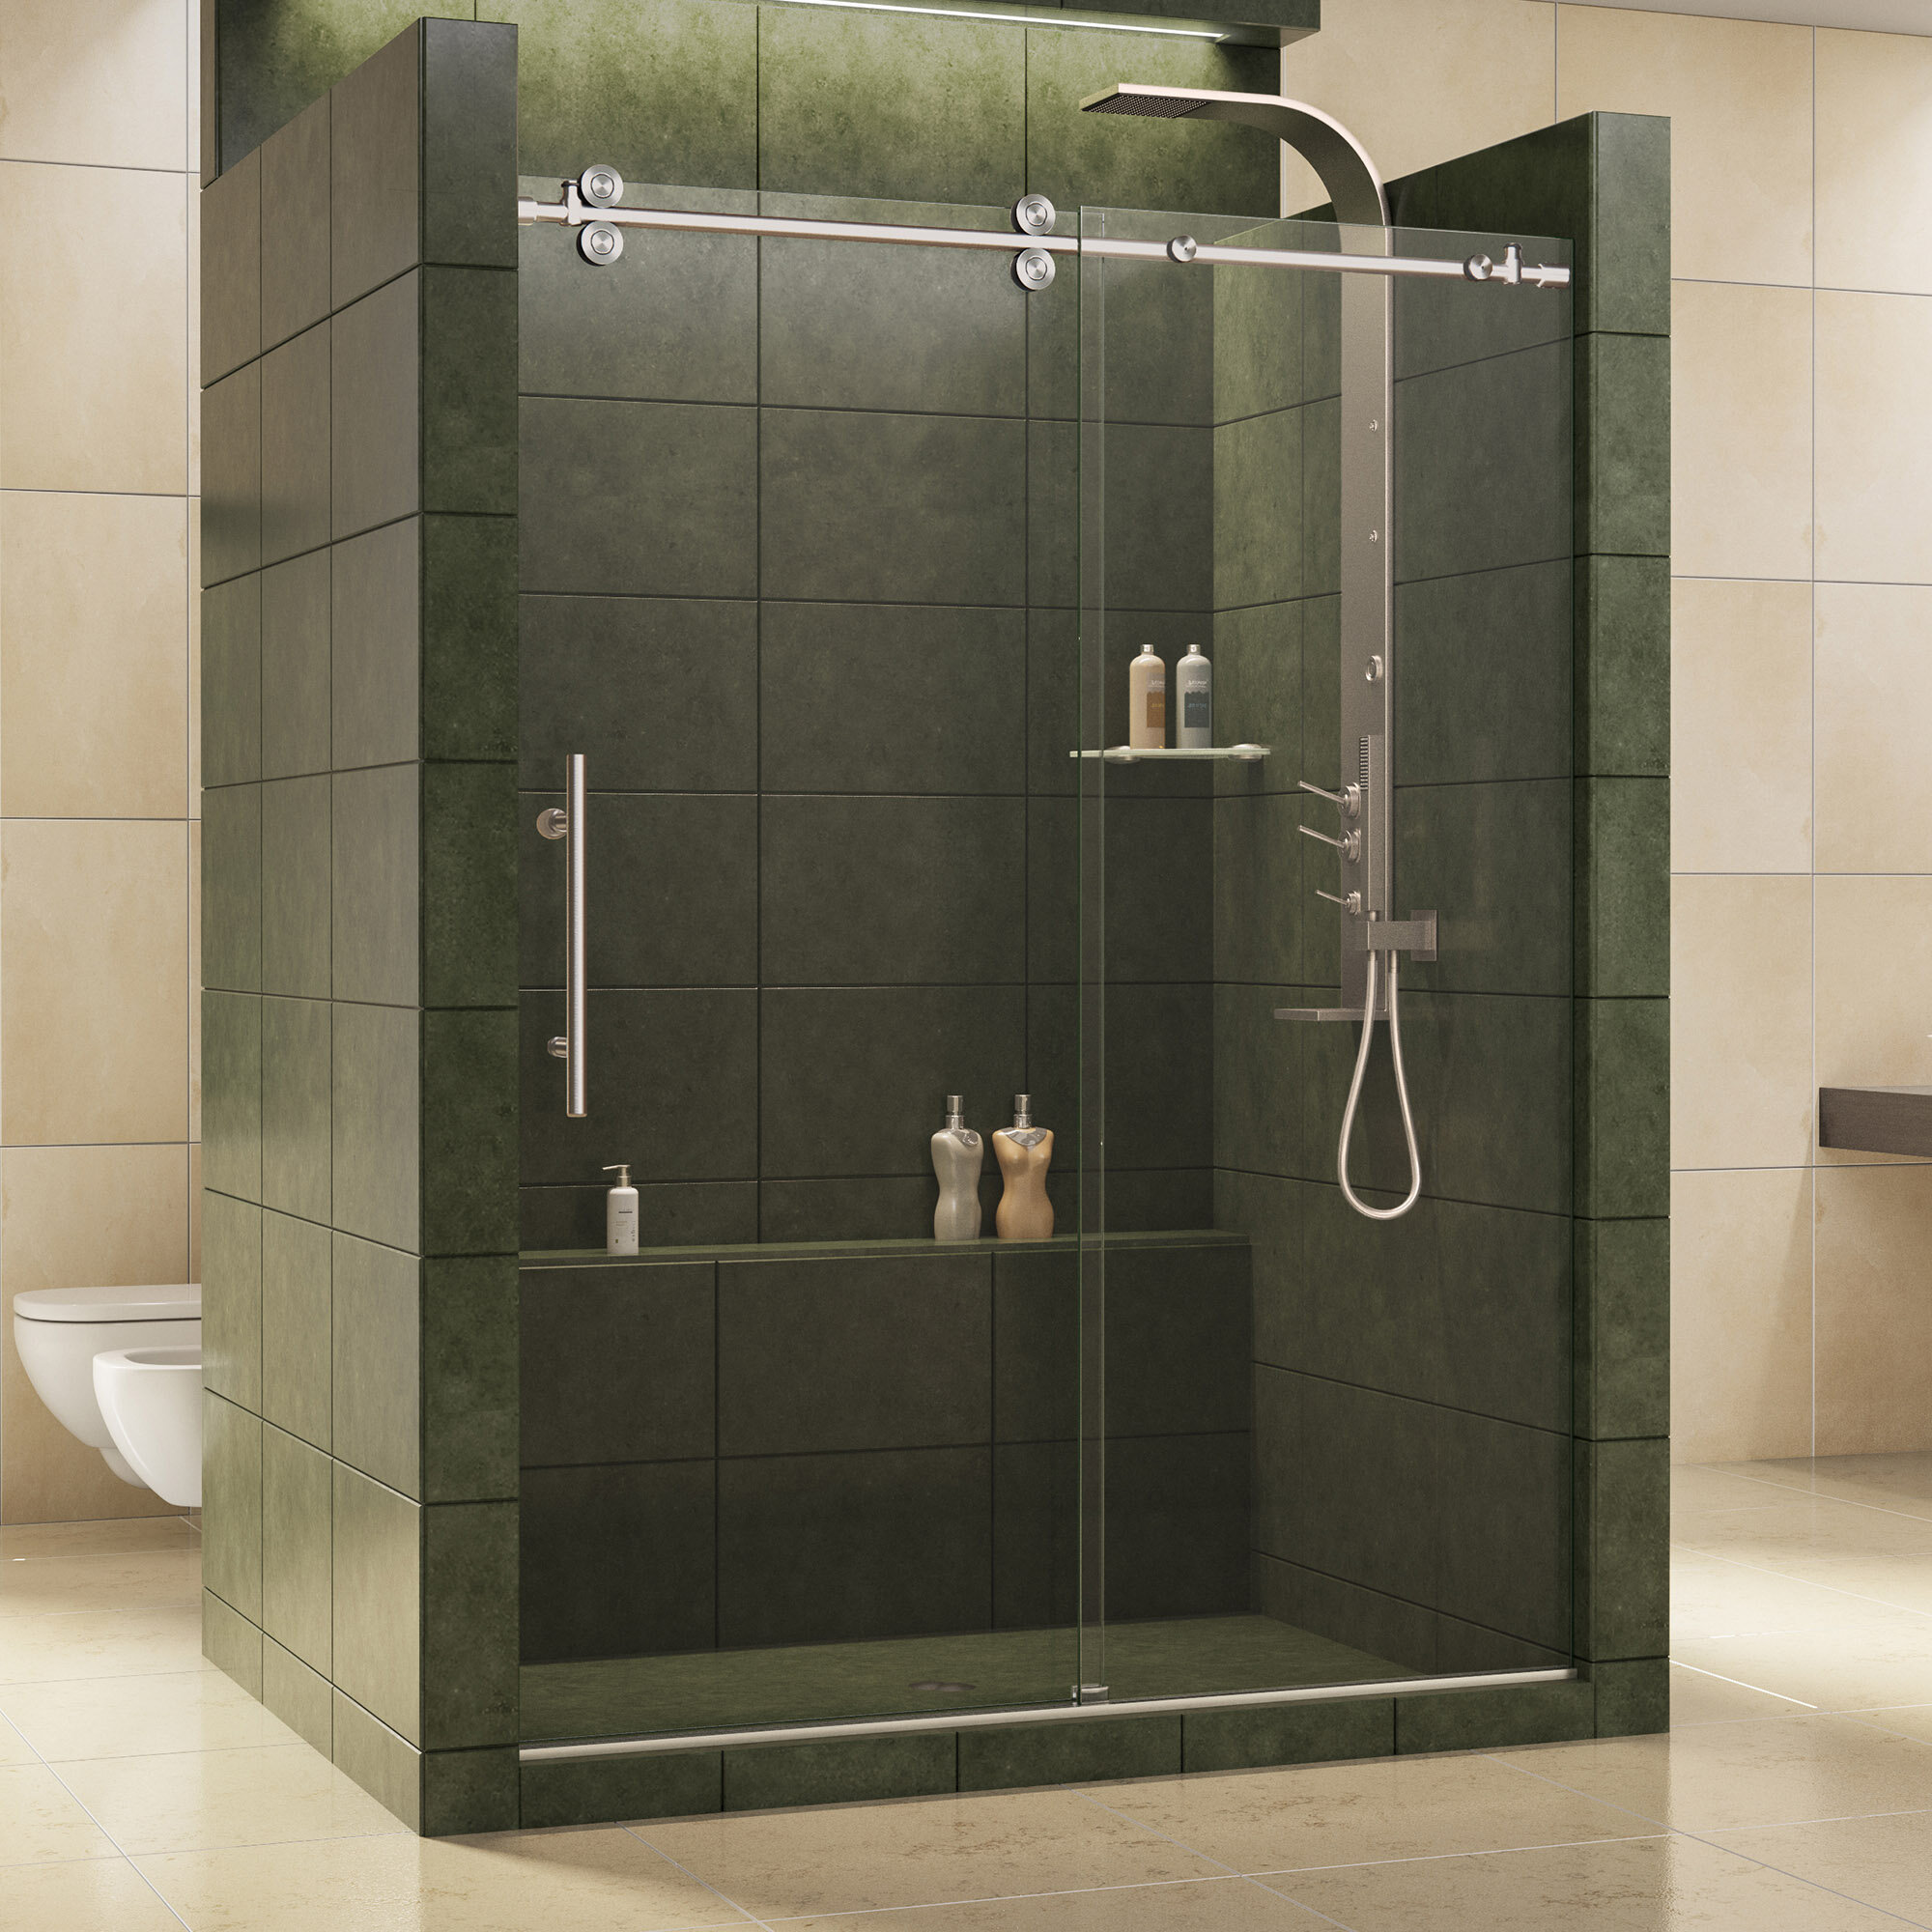 Dreamline Enigma X 60 X 79 Single Sliding Frameless Shower Door